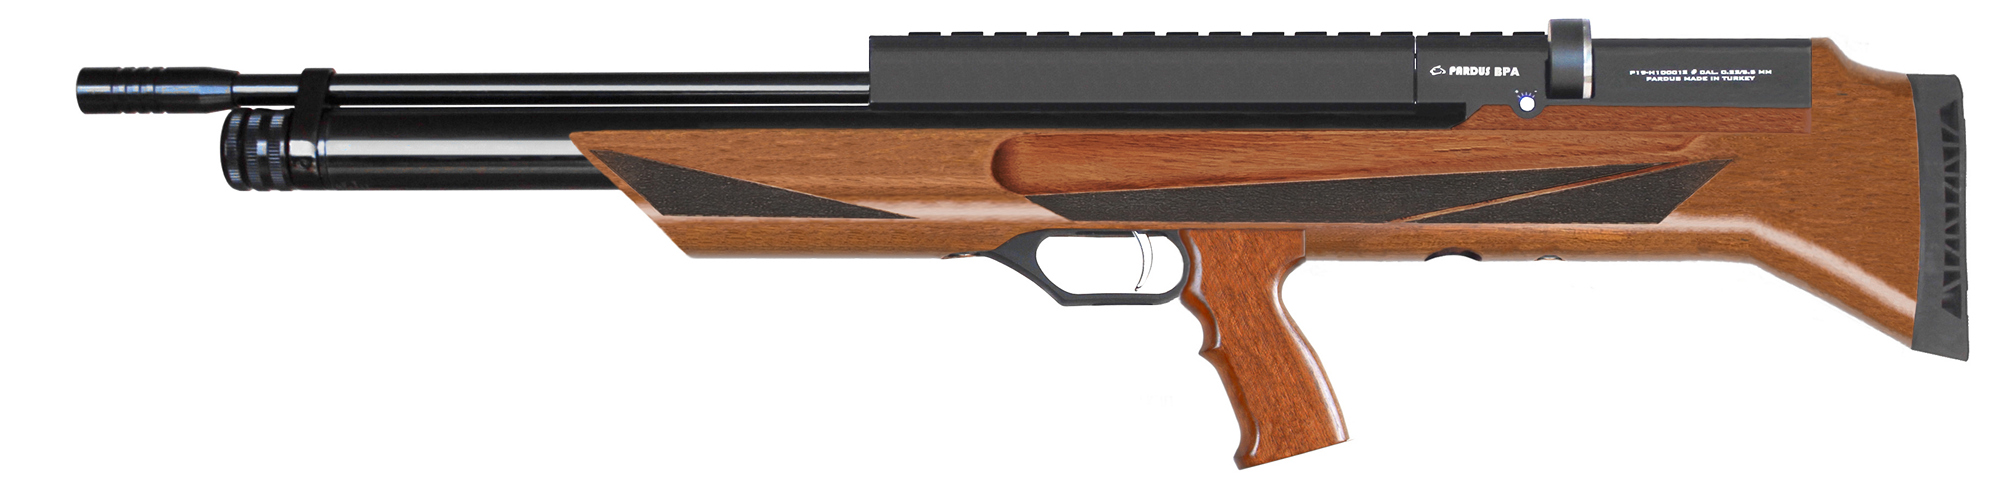 The 2019 New Airgun Products News Bulletin ~ Air Rifle SA